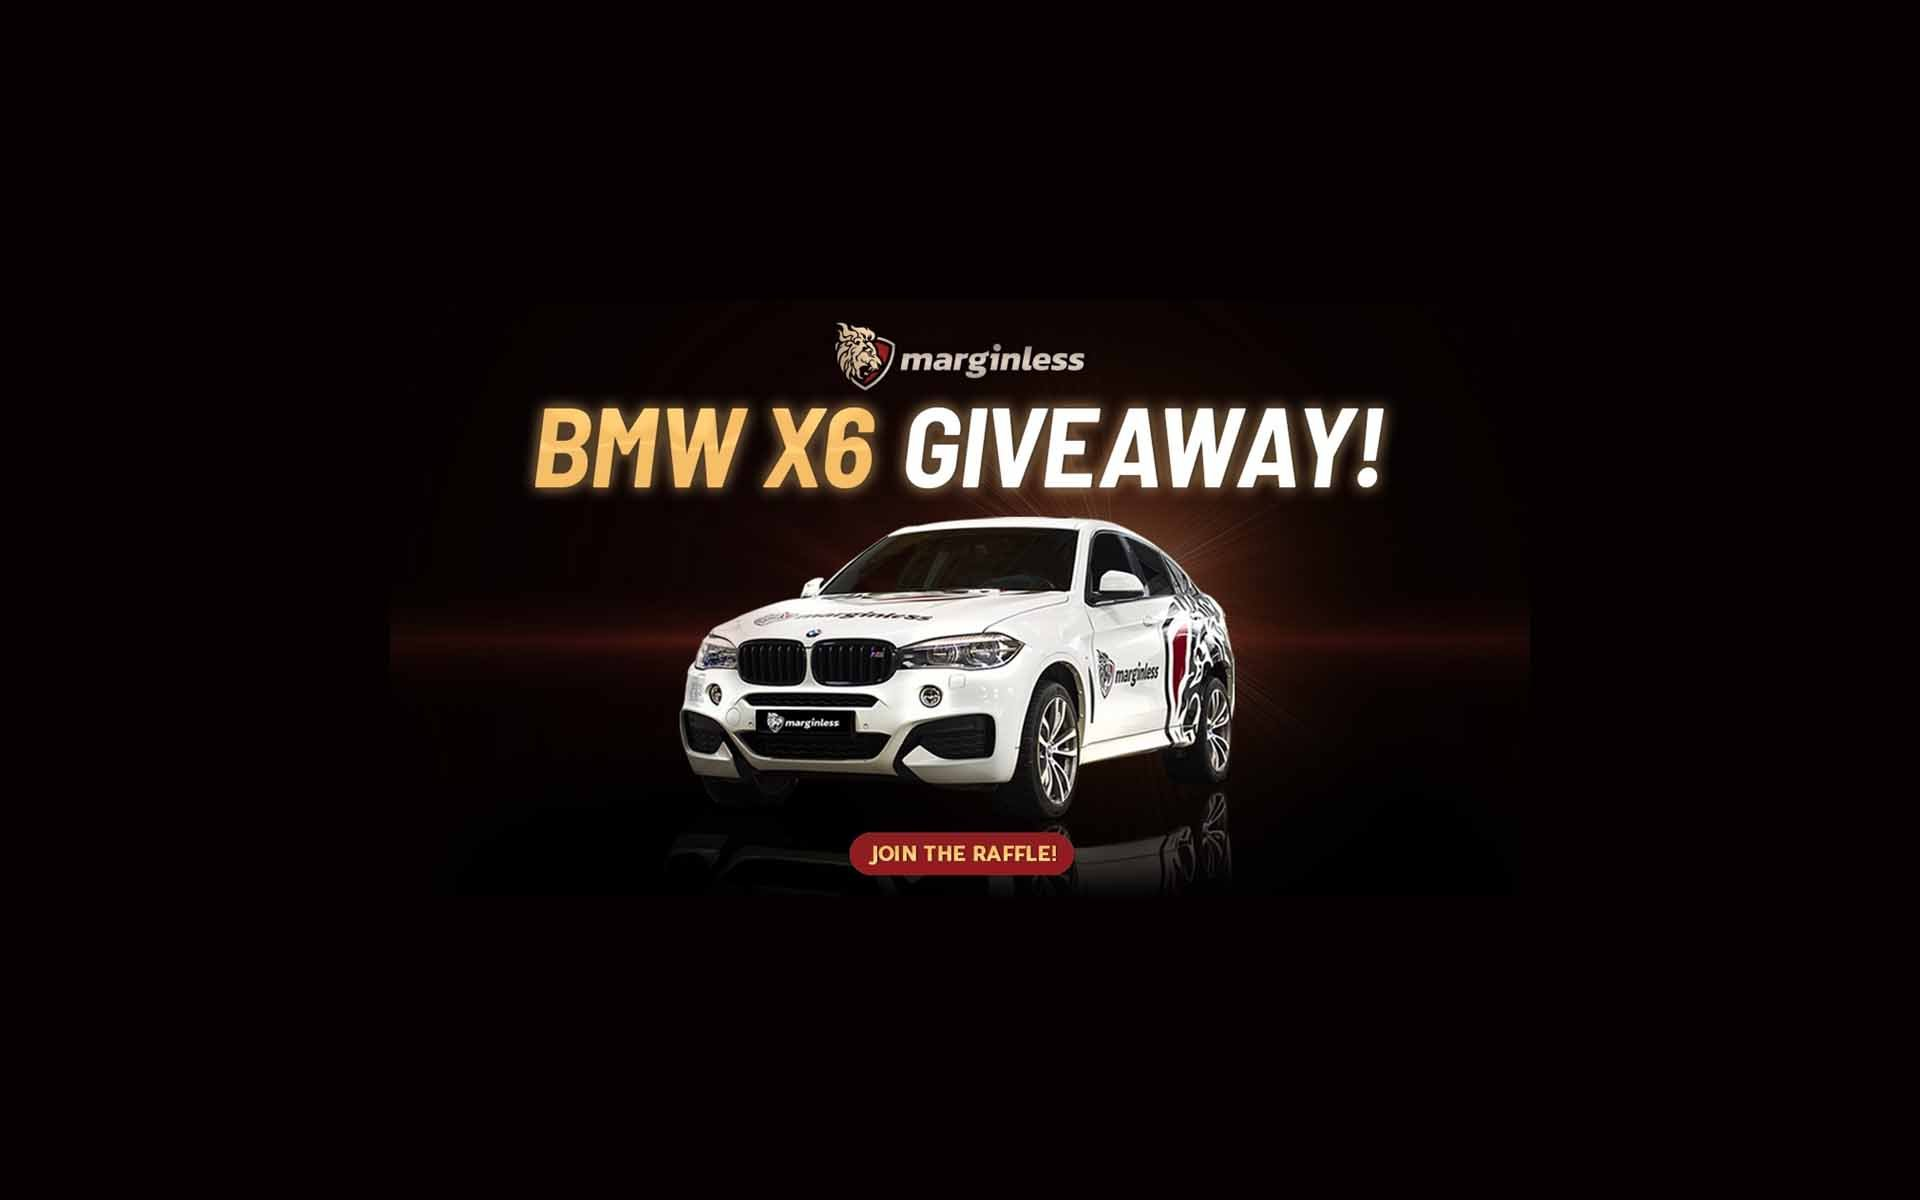 Betting ICO is Hosting a One of a Kind Raffle - Win a BMW X6!